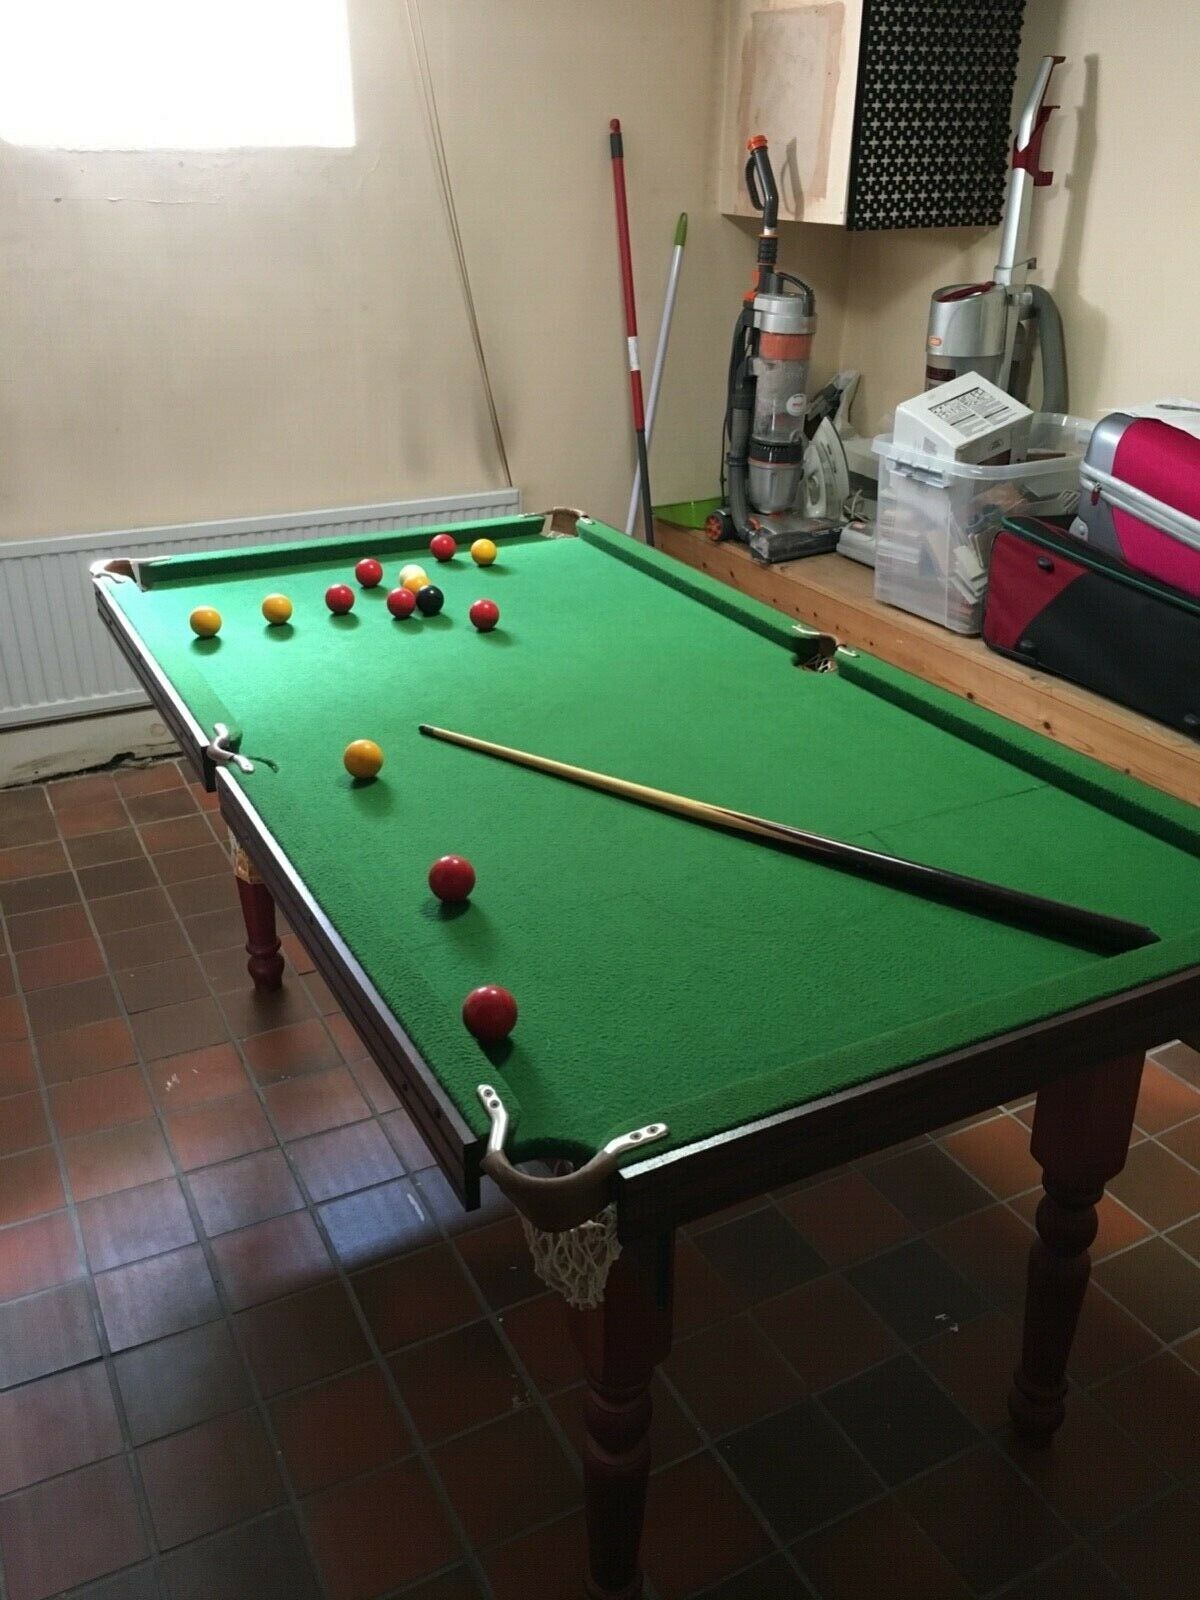 pool table 6ft used with pool and snooker balls and cues